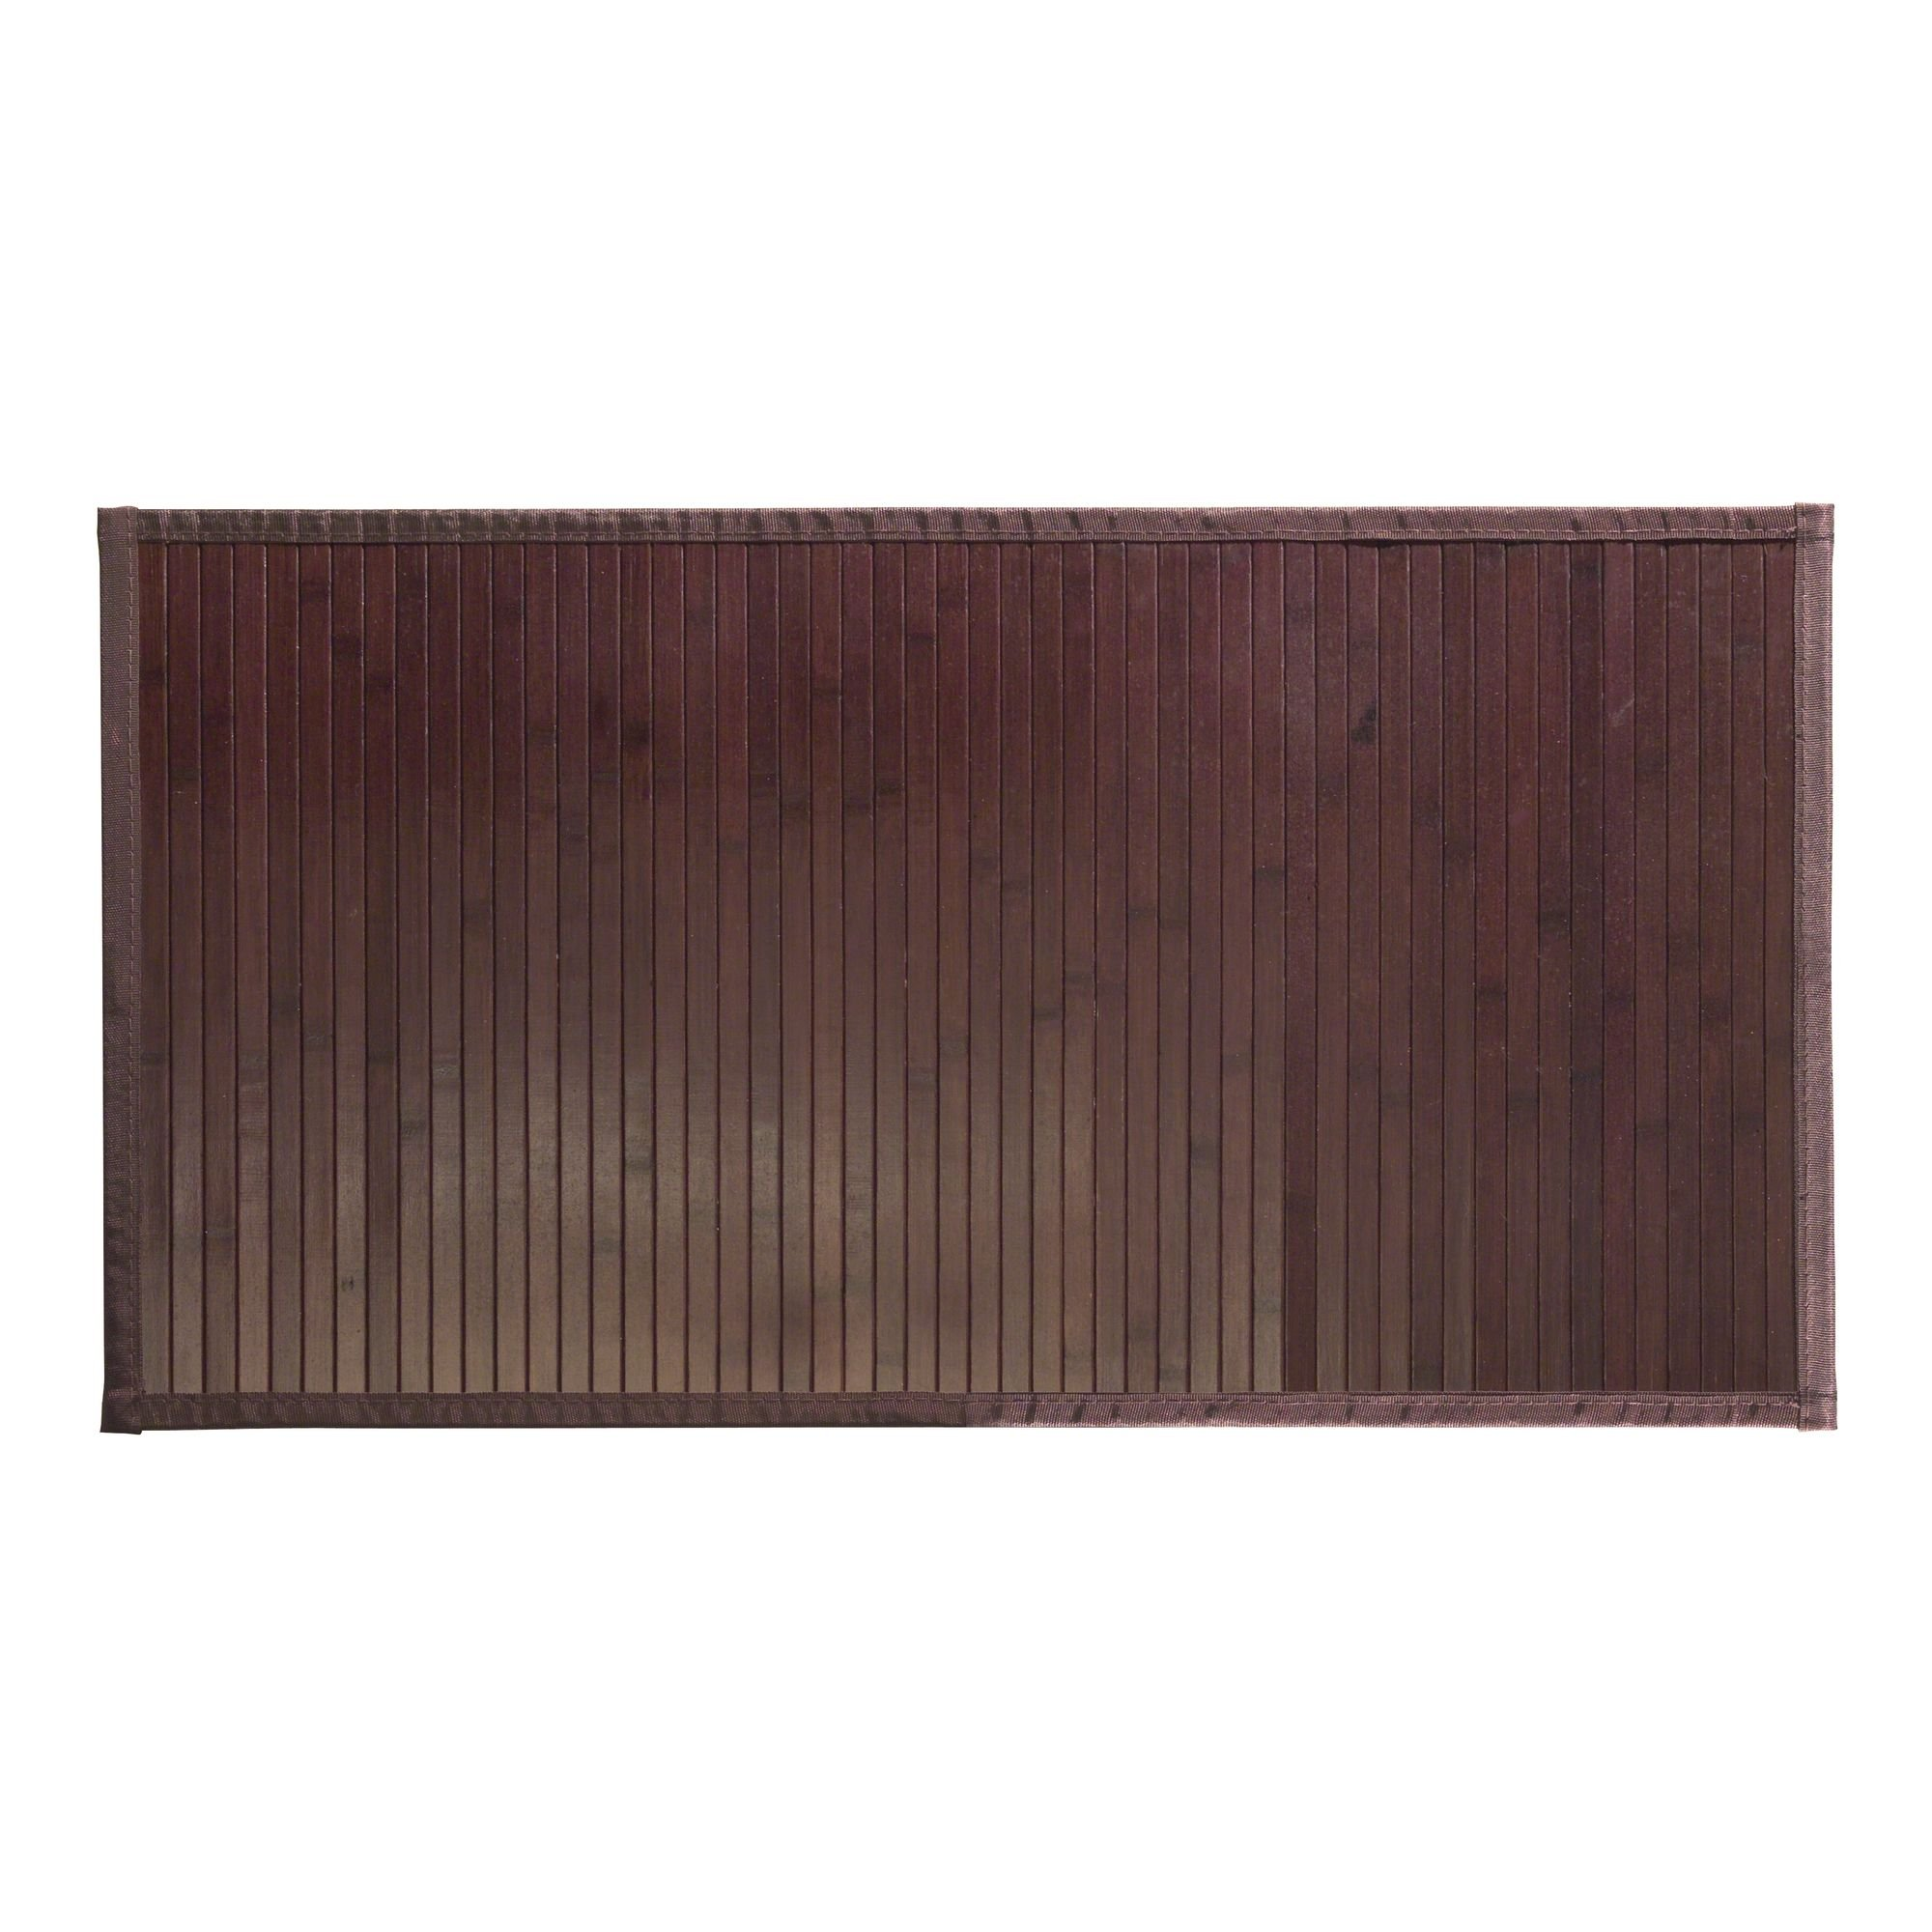 mDesign Modern Bamboo Wood Rectangular Floor Mat Rug - Fabric Trim, Non-Skid, Water Resistant - for Bathroom, Kitchen, Entryway - Easy Clean, Environmentally Friendly - Large - Pack of 2, Mocha Brown by mDesign (Image #6)